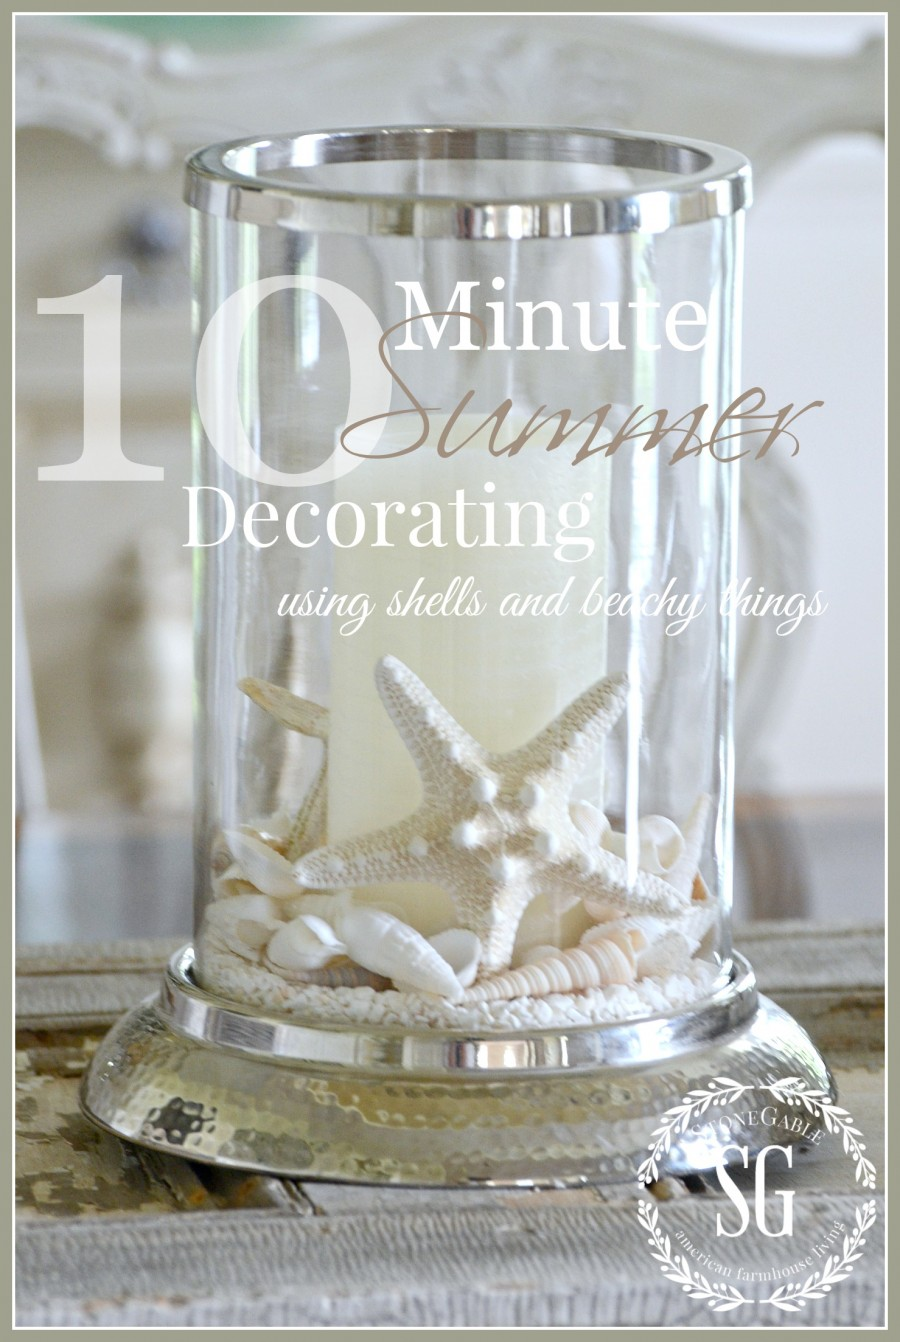 10 MINUTE SUMMER DECORATING